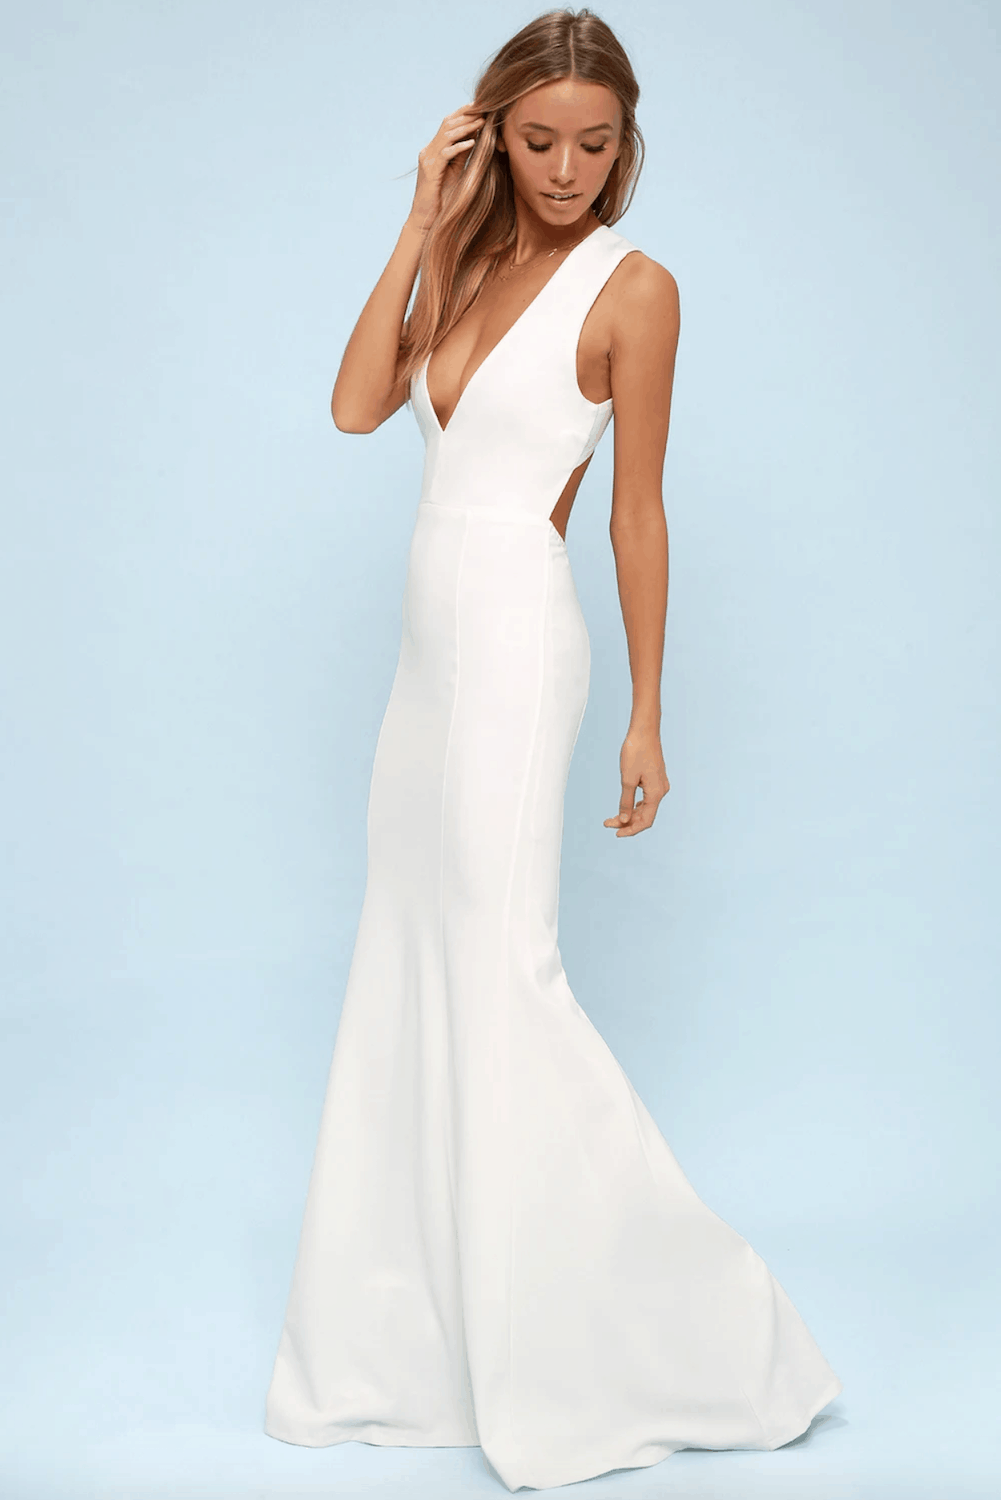 Where To Buy A Cheap Affordable Wedding Dress On A Tight Budget